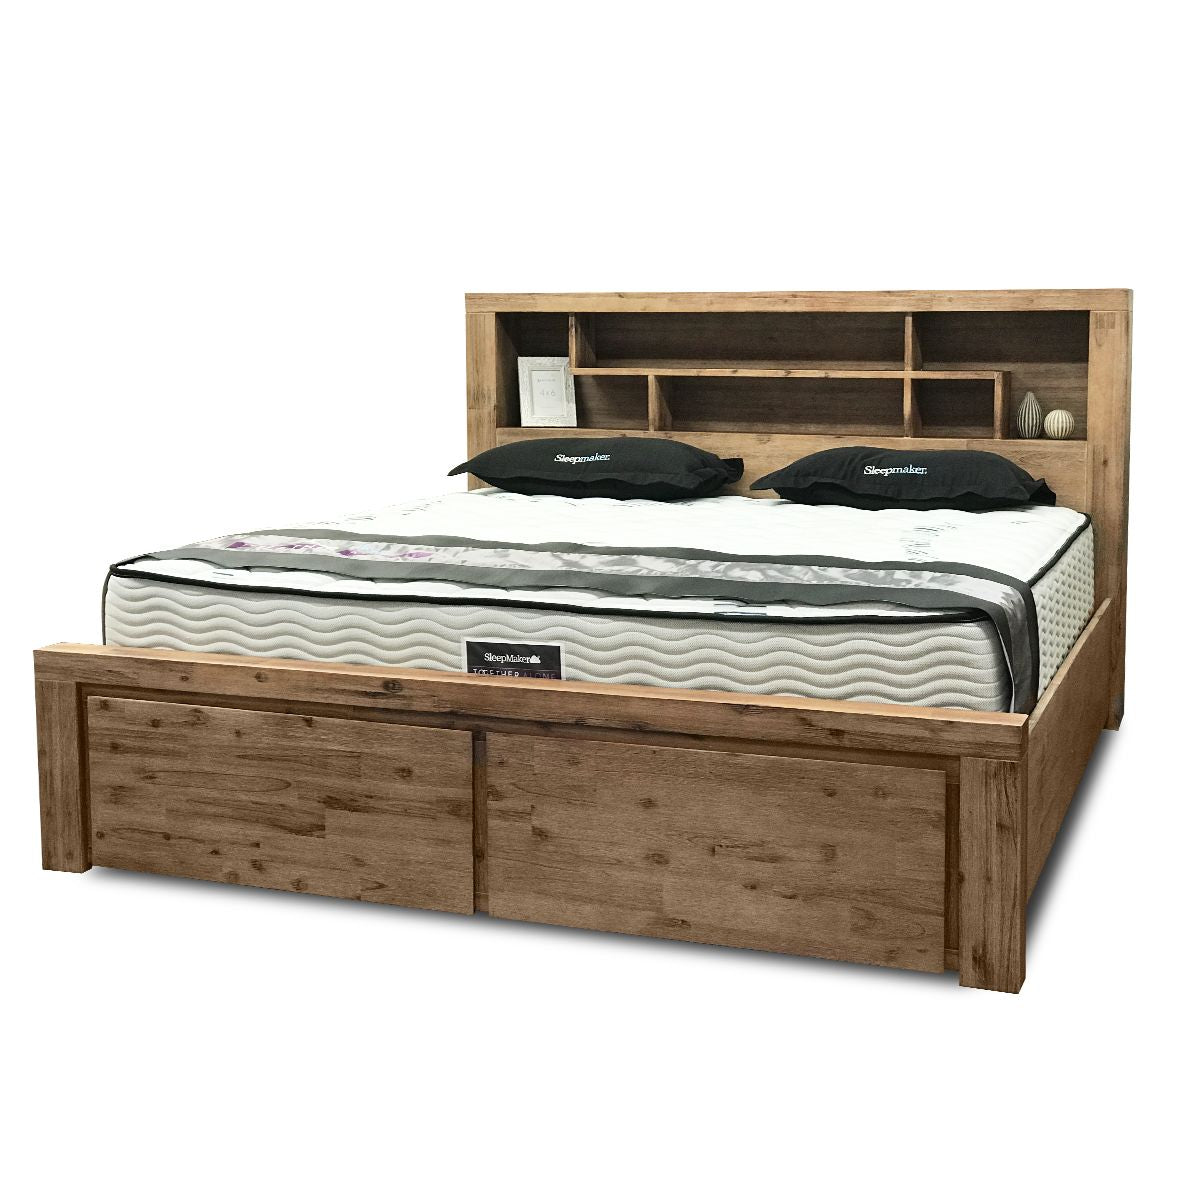 Contemporary Modern Bed Frame Cape Collection The Bed Shop Auckland The Furniture Store The Bed Shop